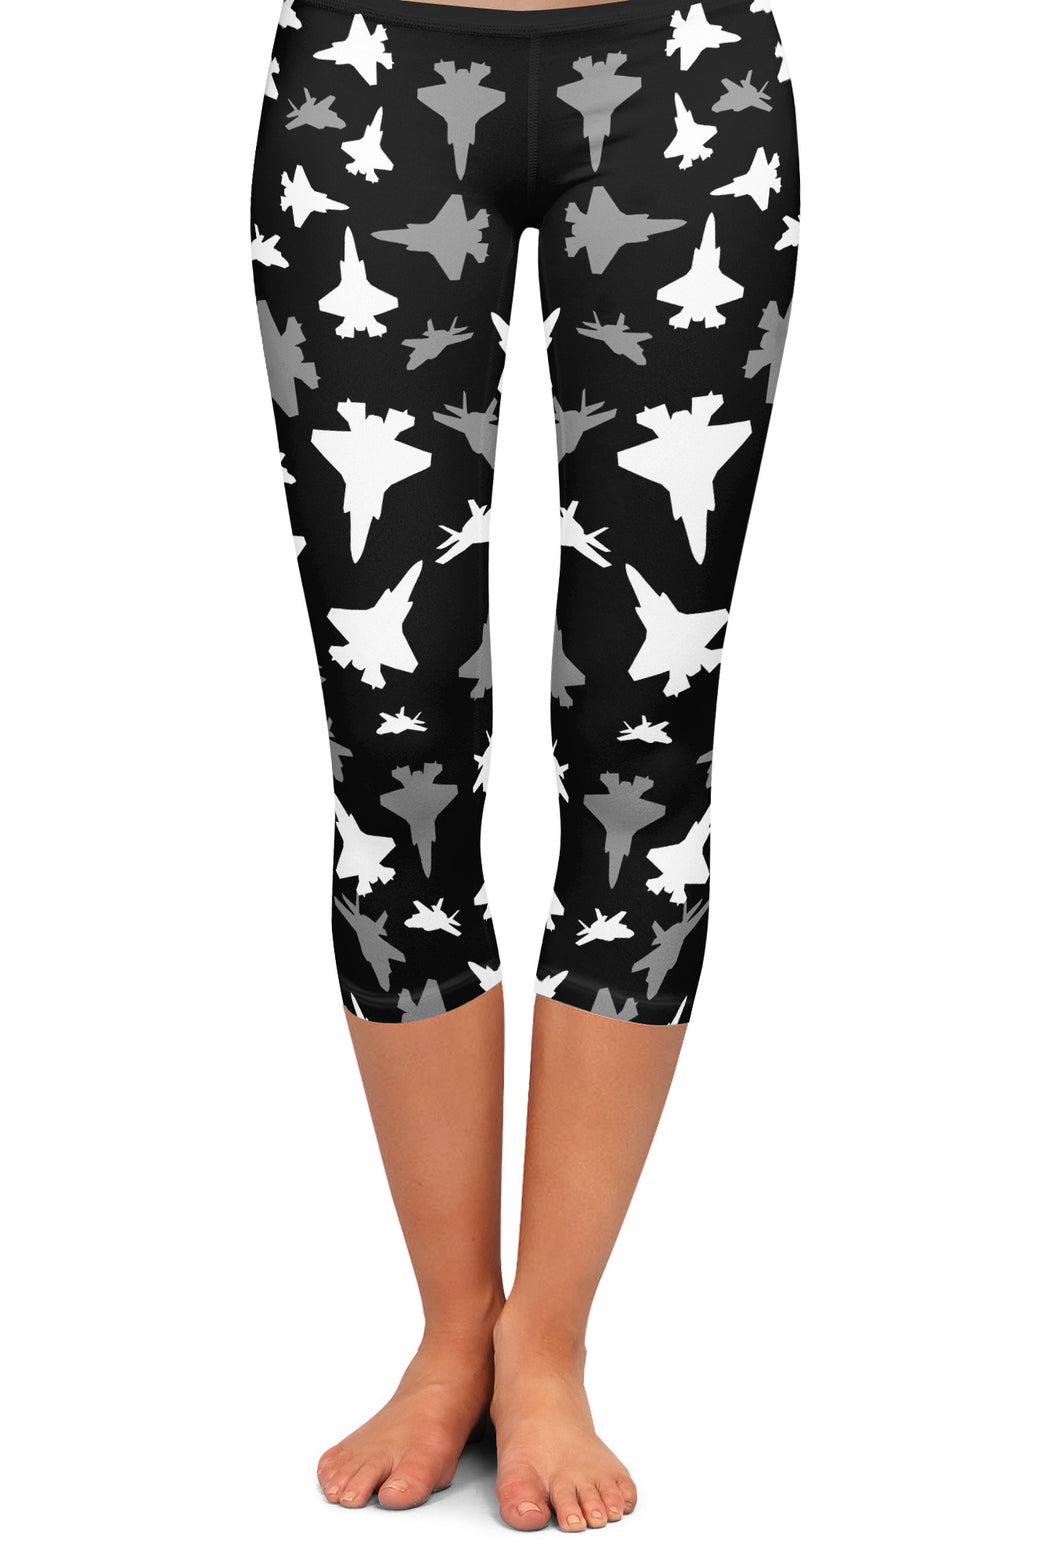 Fighter 3 Silhouette Capri Leggings